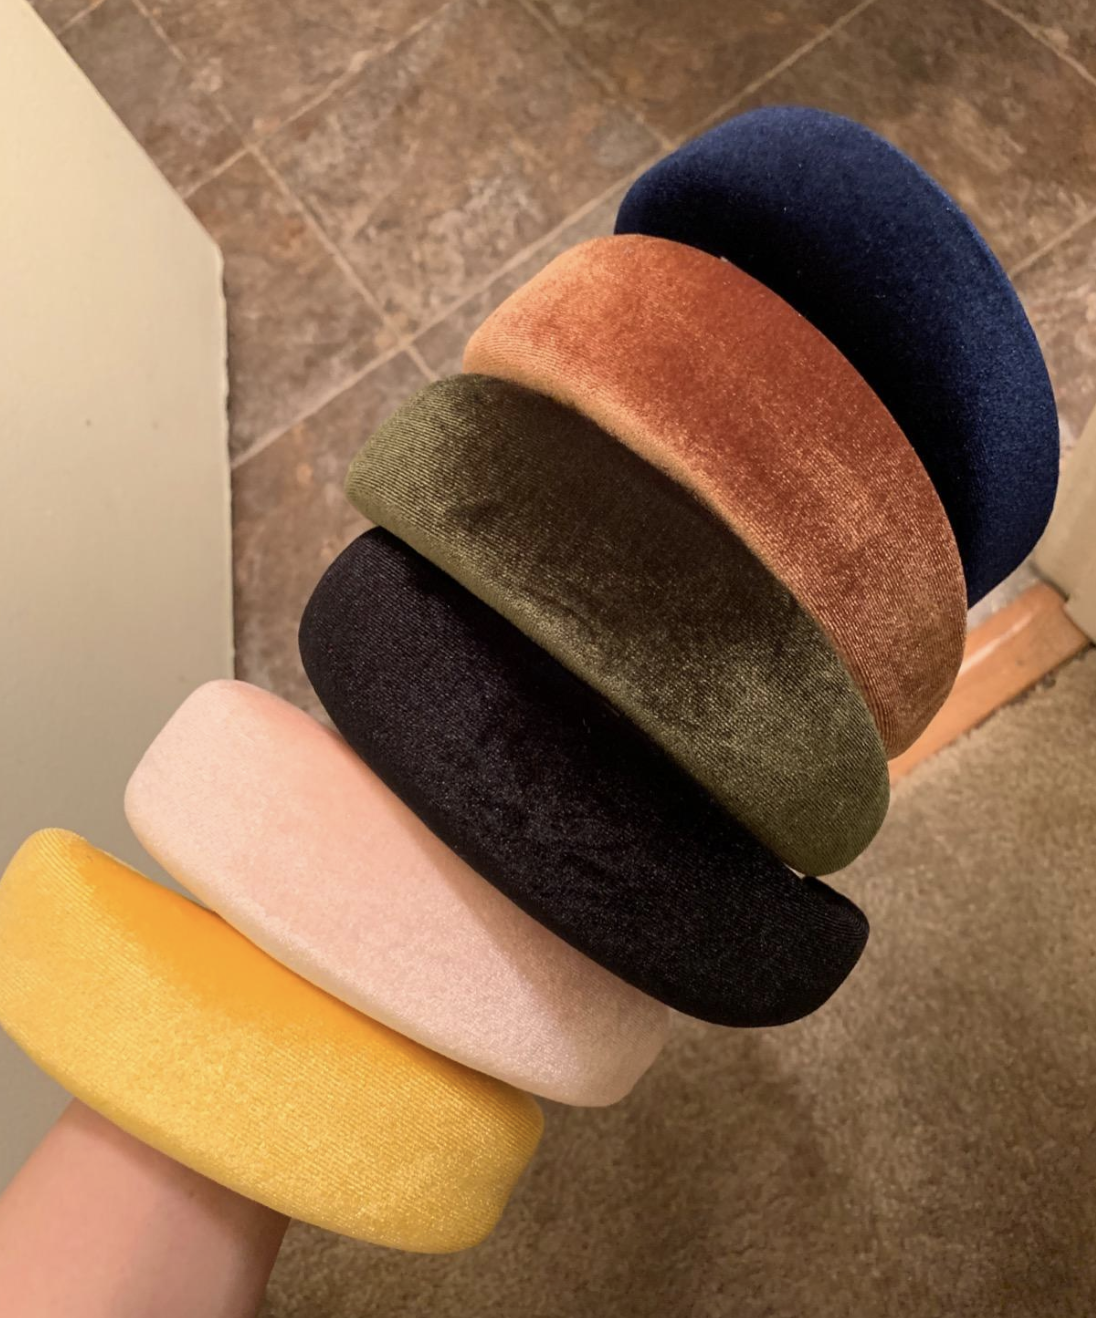 reviewer photo of the multi-colored headbands